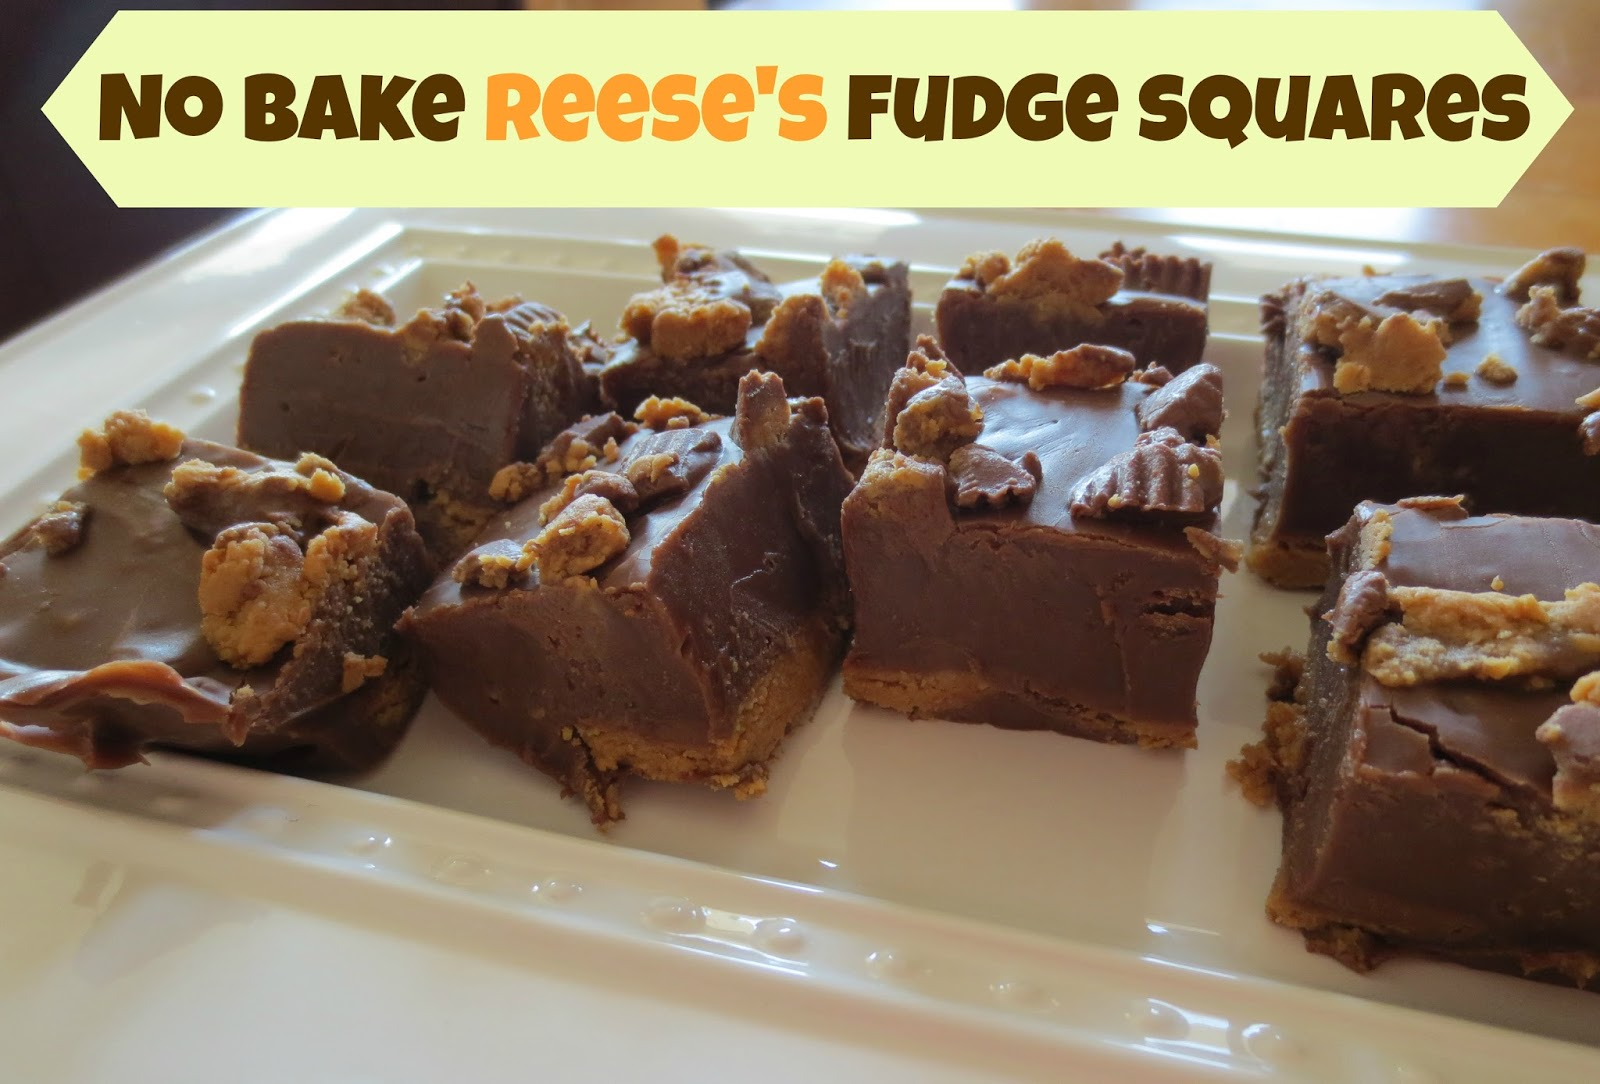 All She Needs to Know: No Bake Reese's Fudge Squares